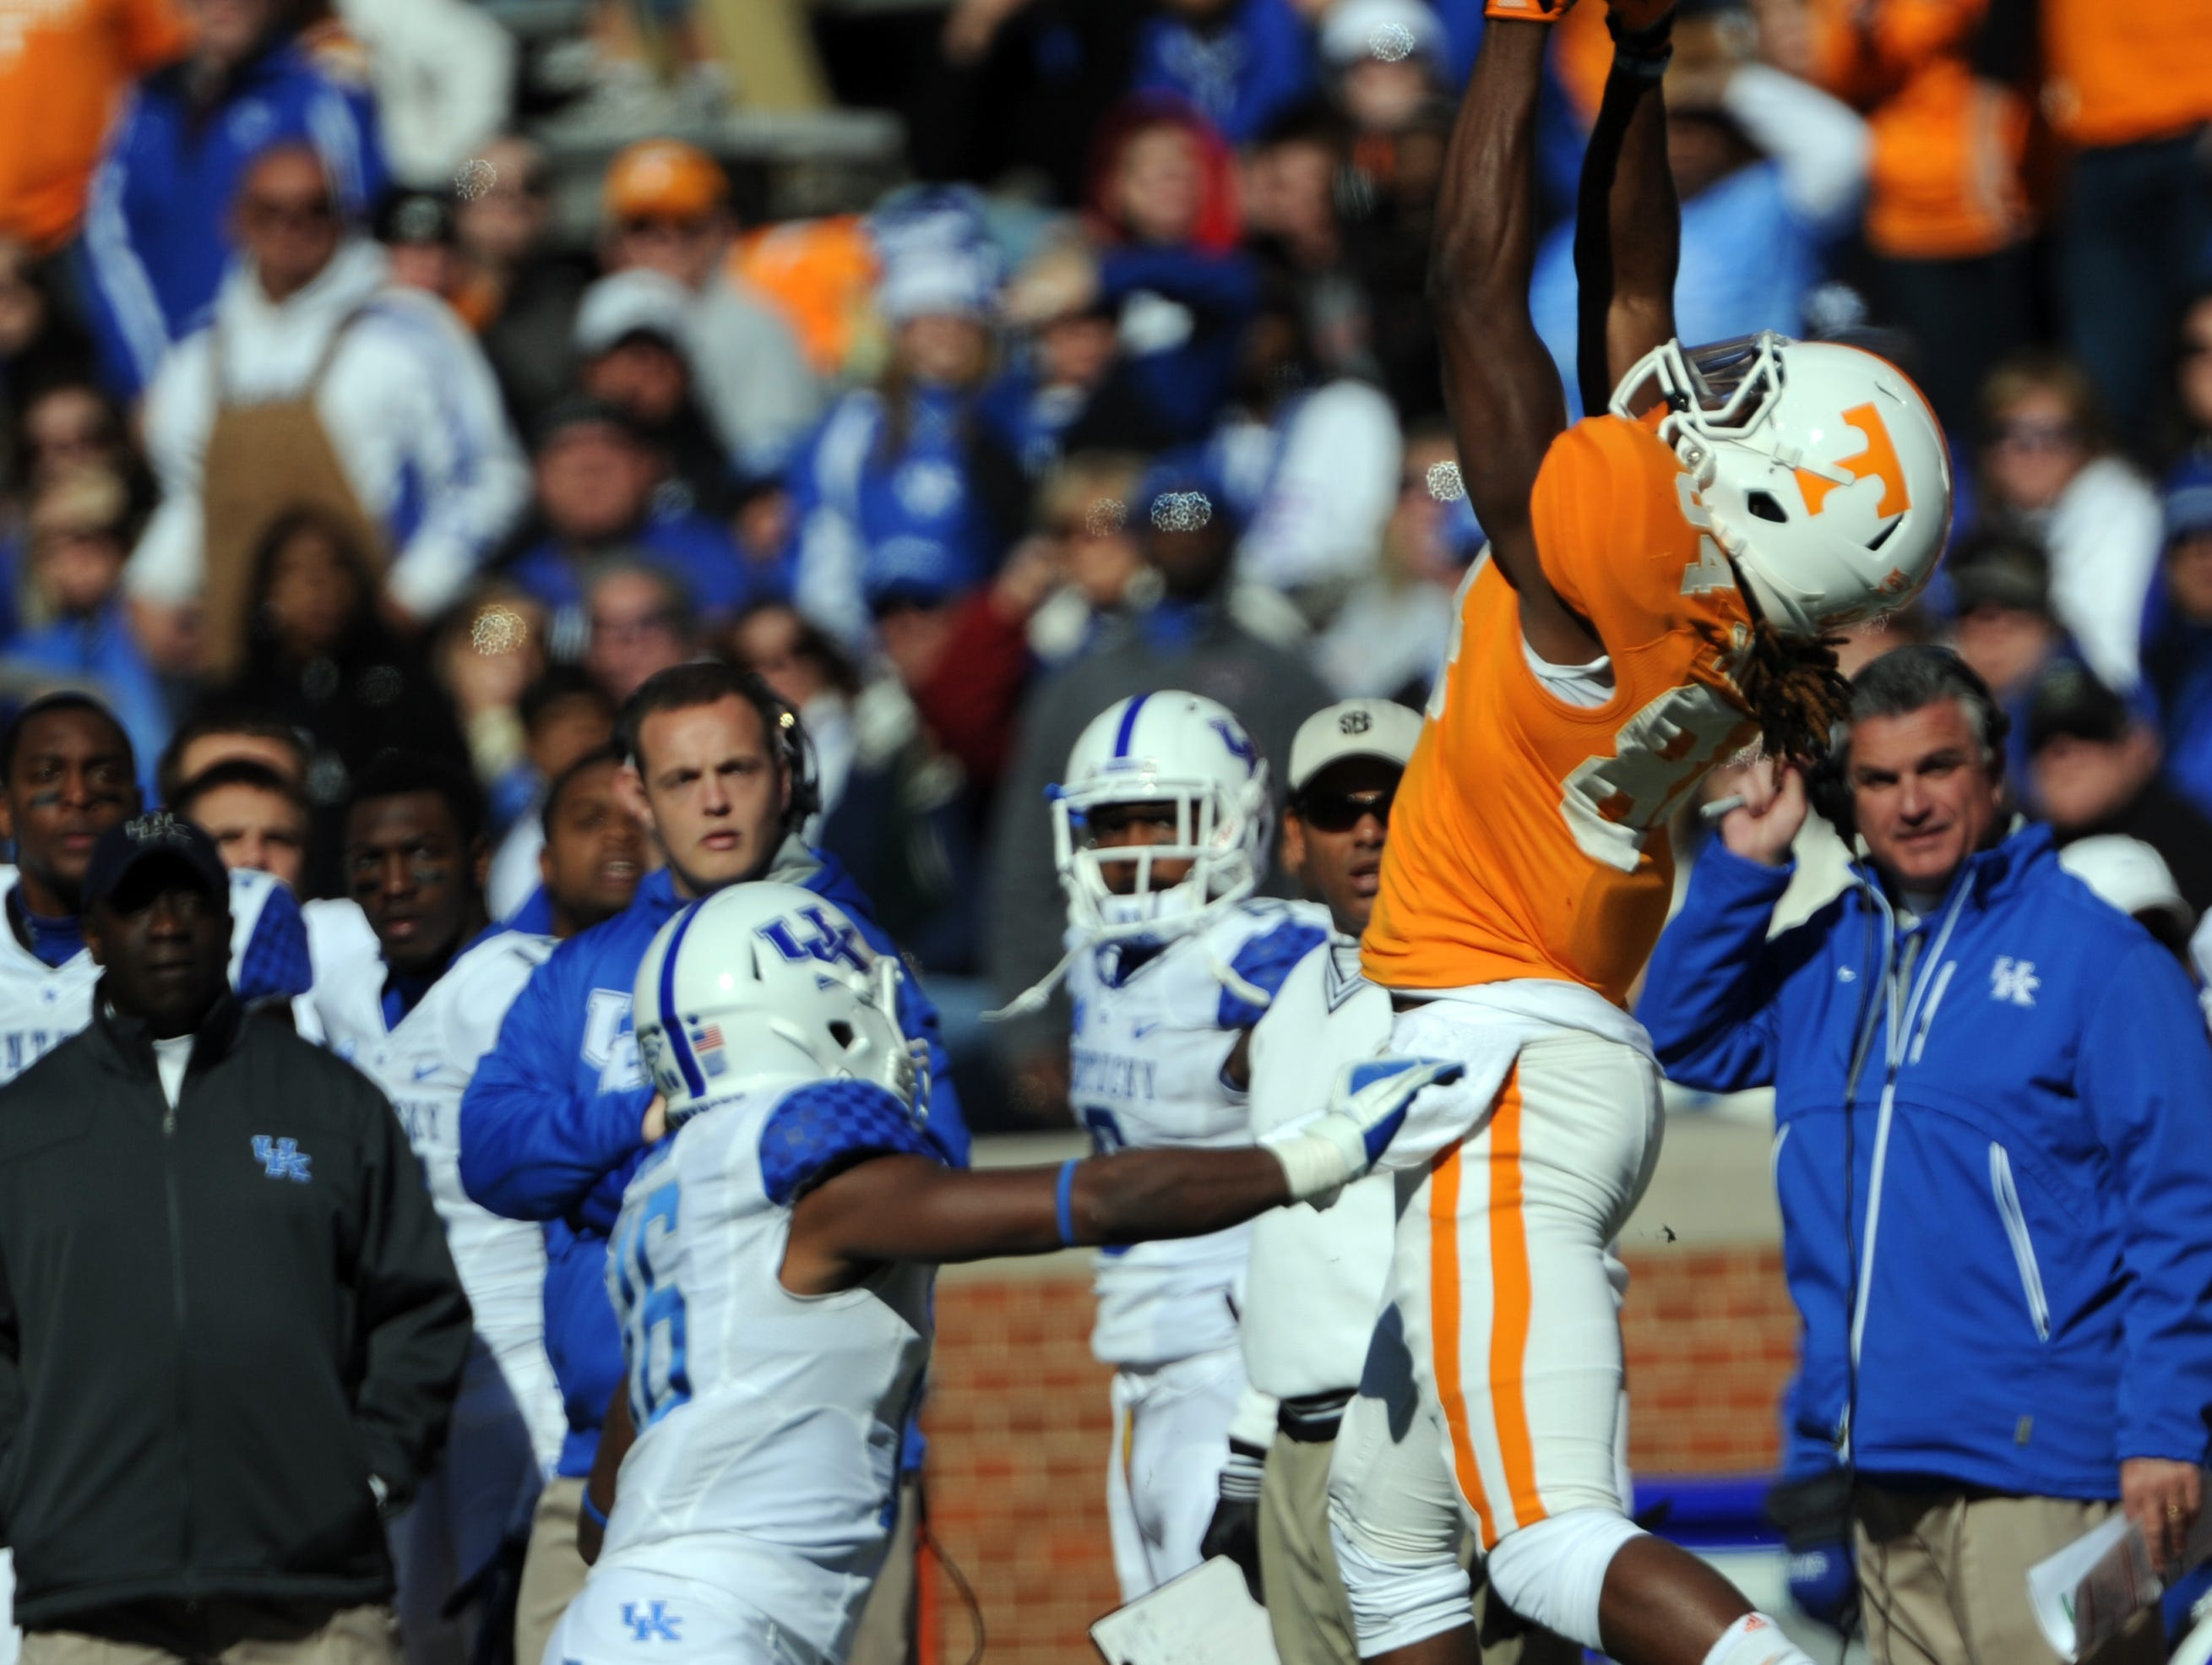 Tennessee wide receiver Cordarrelle Patterson (84) makes a catch for a first down in the first quarter as Kentucky defensive back Cody Quinn (16) defends at Neyland Stadium Saturday, Nov. 24, 2012. Six days after head coach Dereck Dooley was fired, the Vols closed the season with a 37-17 win under interim coach Jim Chaney.